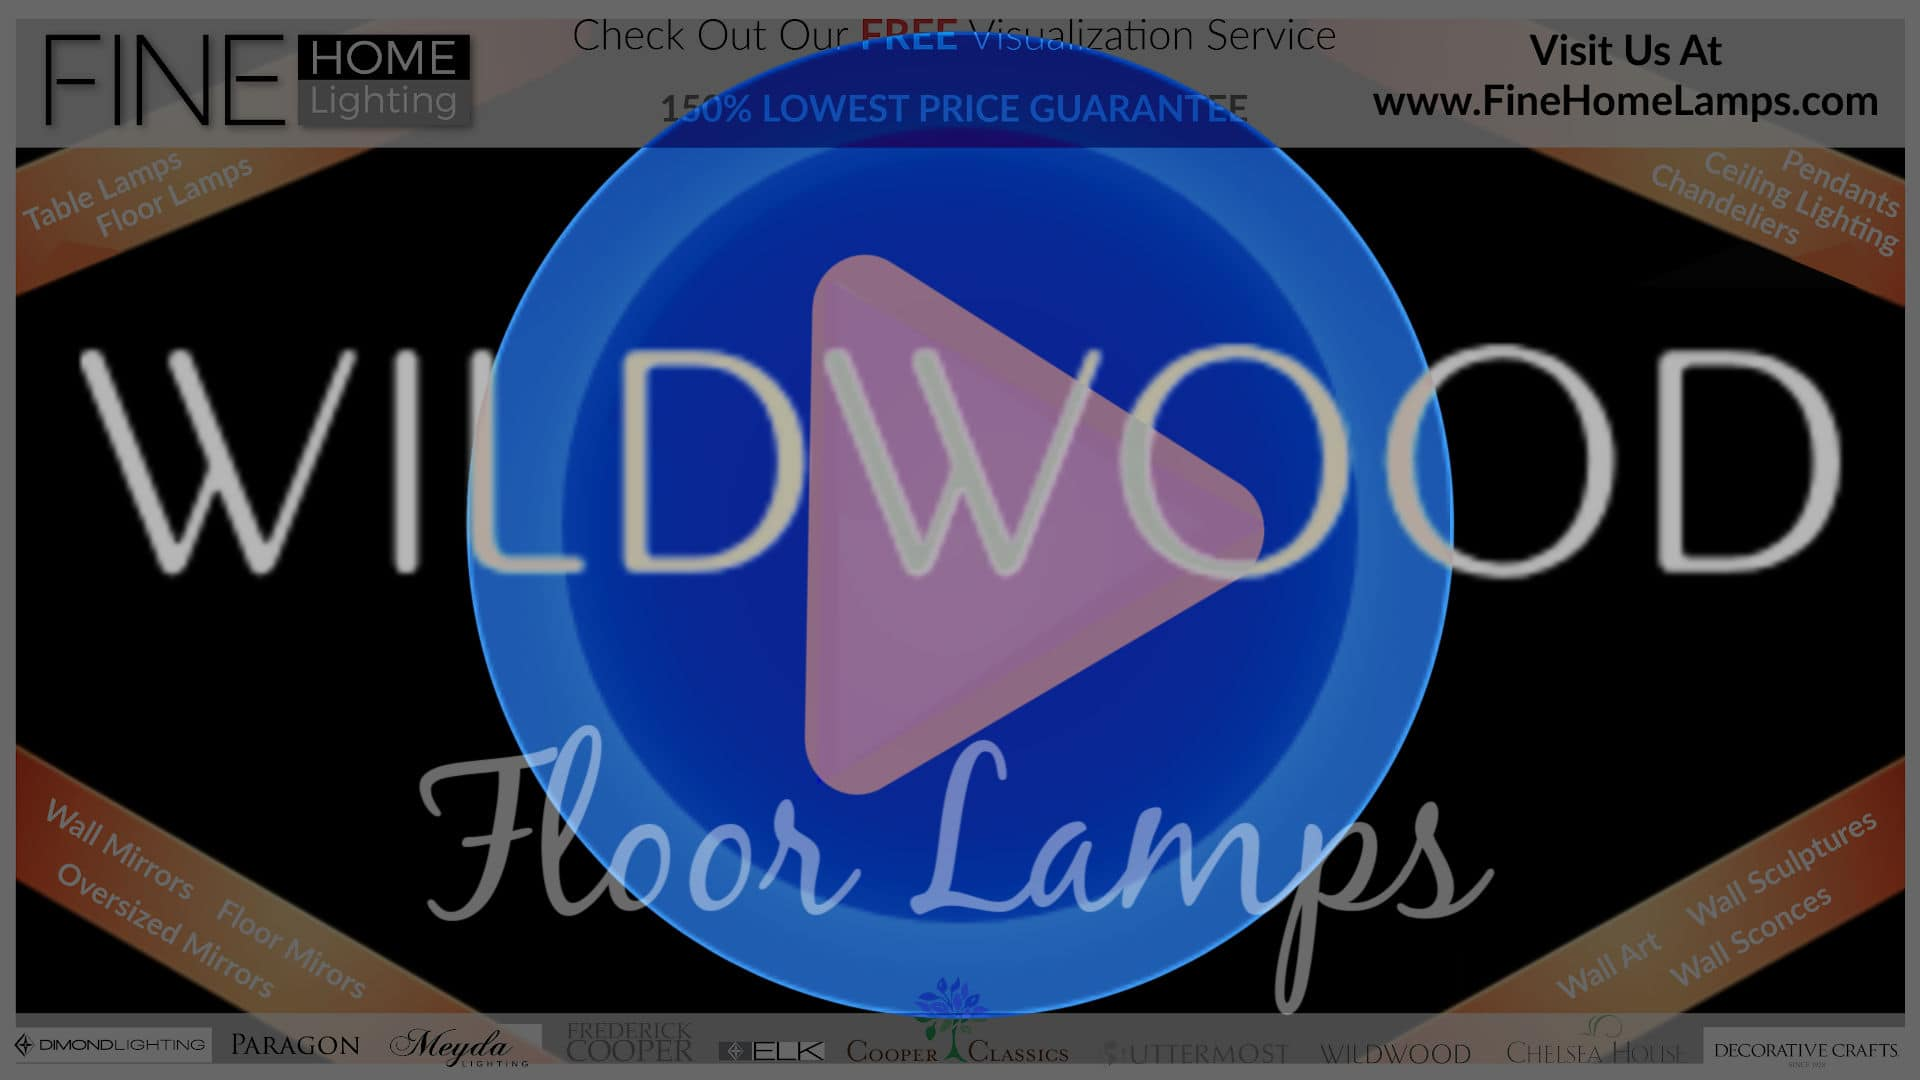 Wildwood-Floor-Lamps-Thanks-for-watching-this-video-Get-an-additional-15-percent-off-your-next-purchase-Use-Coupon-Code-VIDEO-1